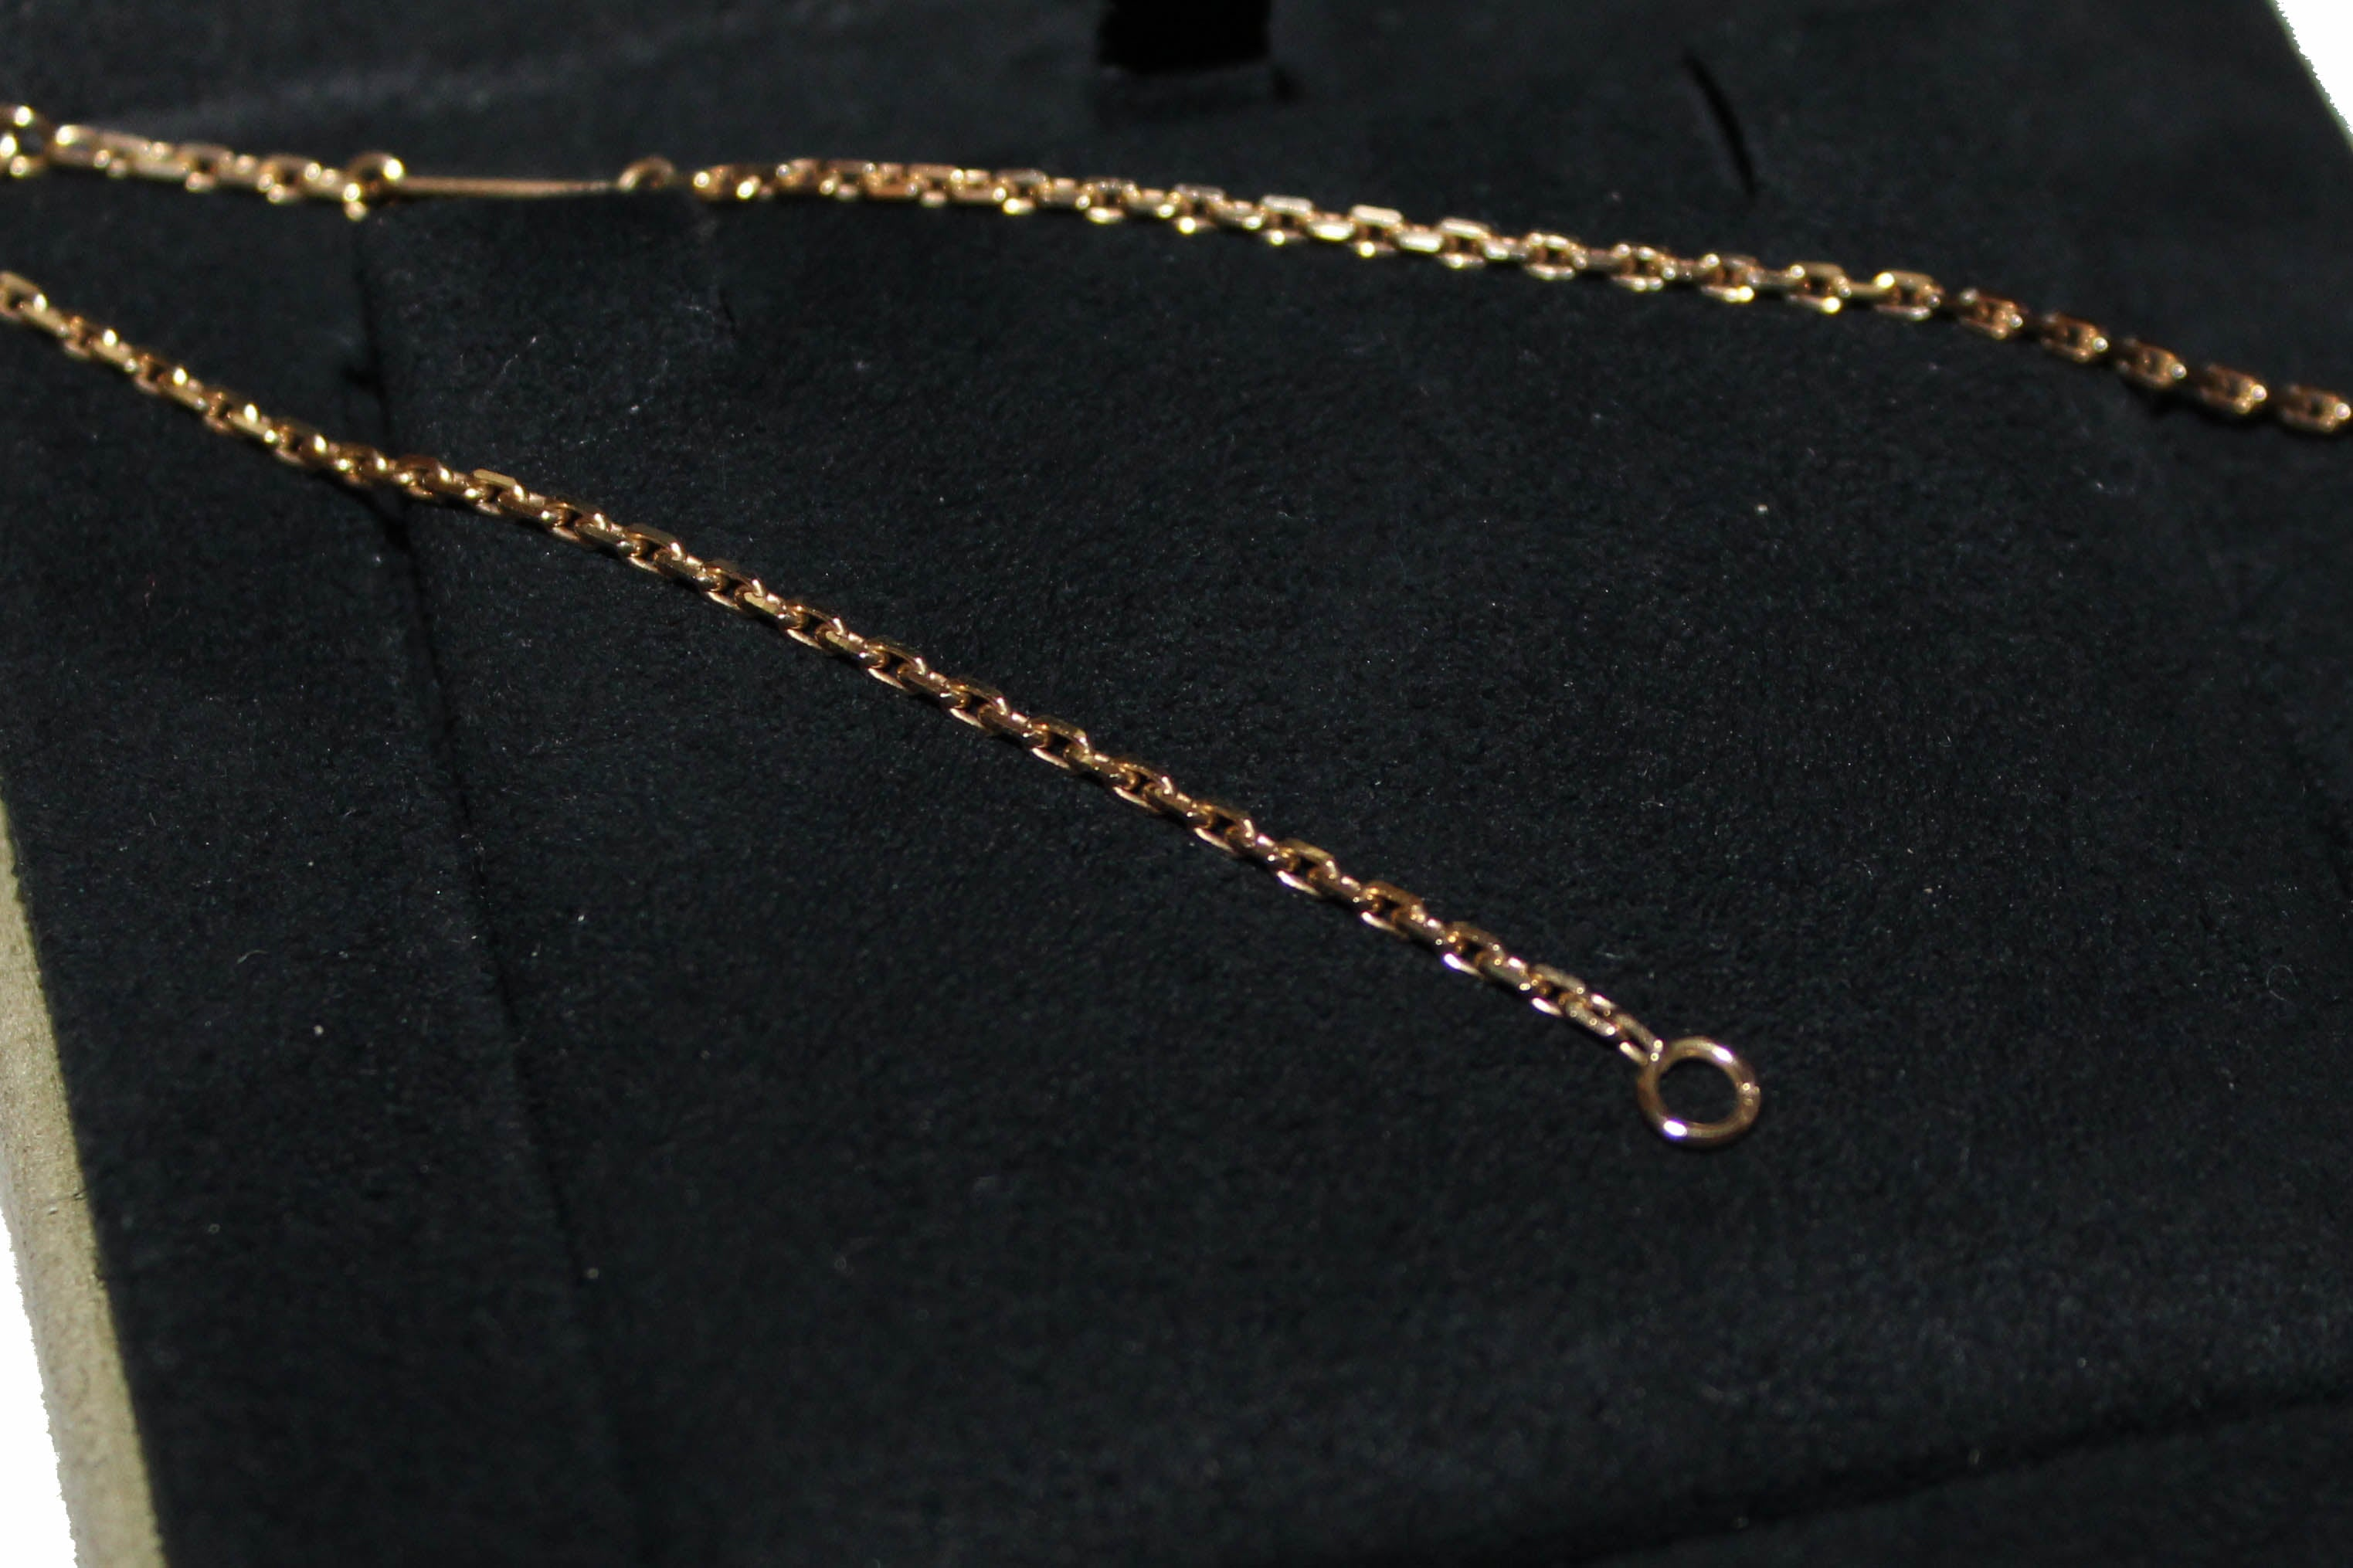 Authentic Van Cleef & Arpels Yellow Gold AU750 Magic Alhambra Long Necklace